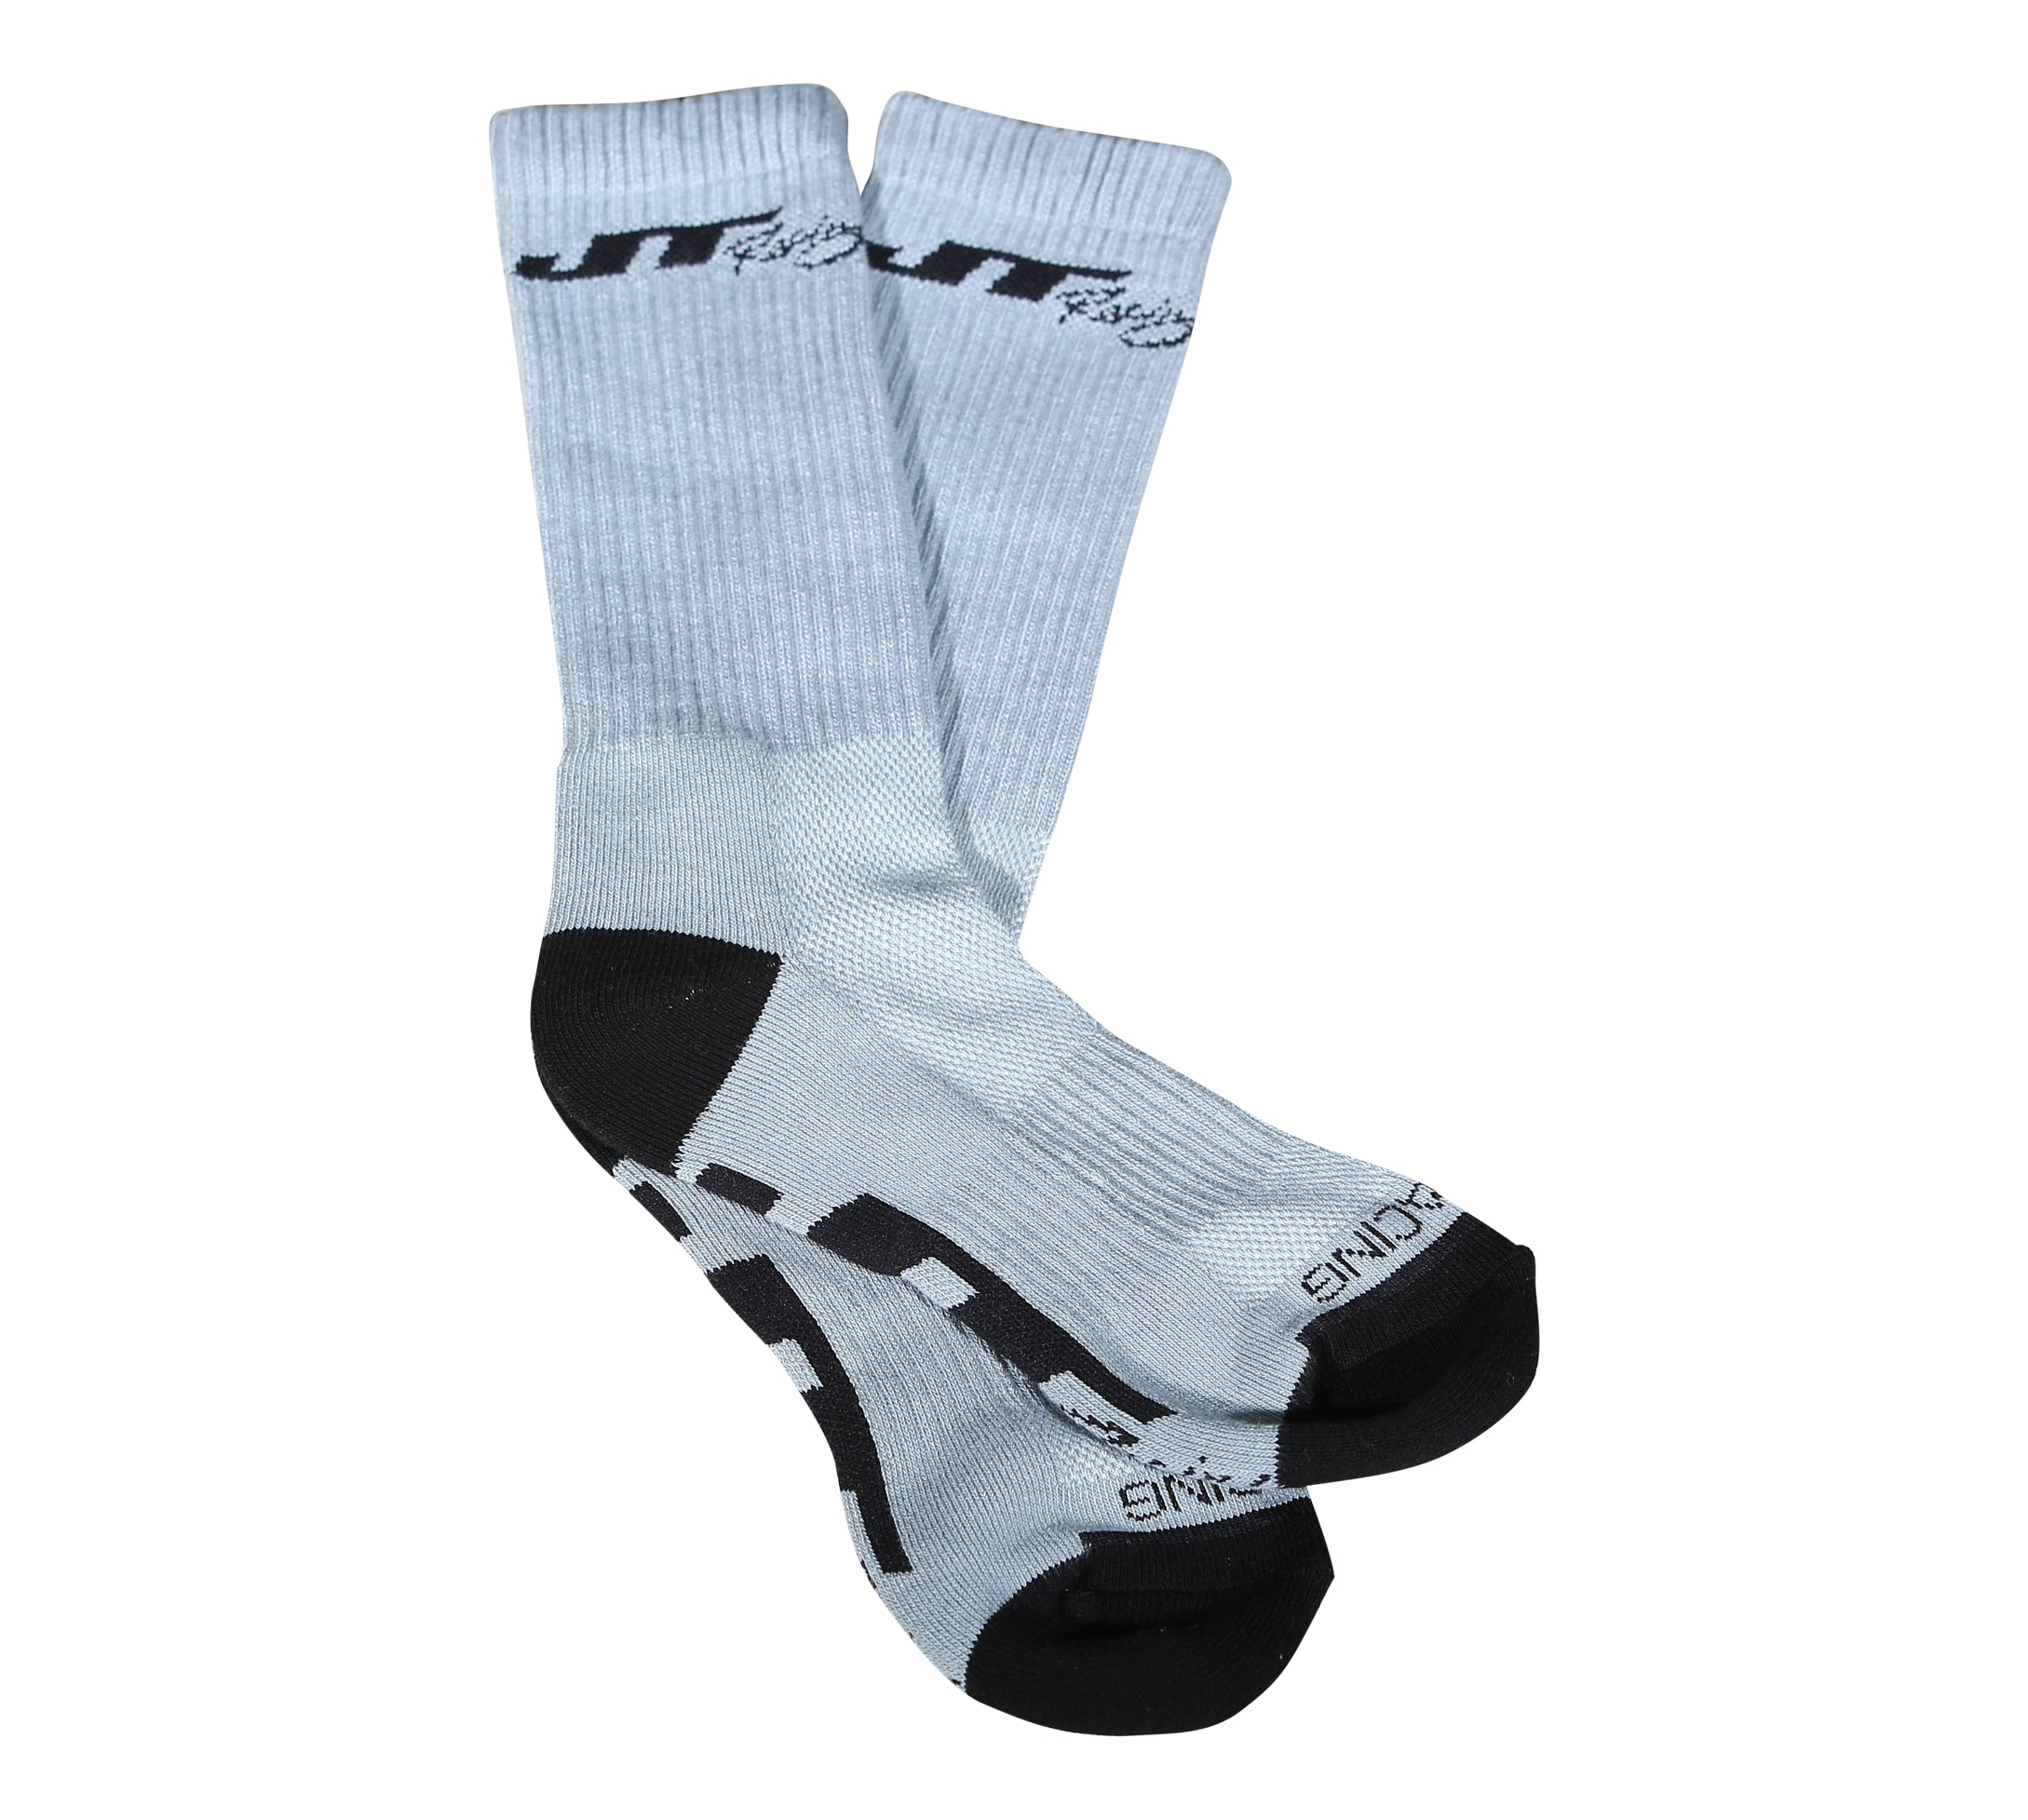 JT Racing-Crew Socks, Grey/Black